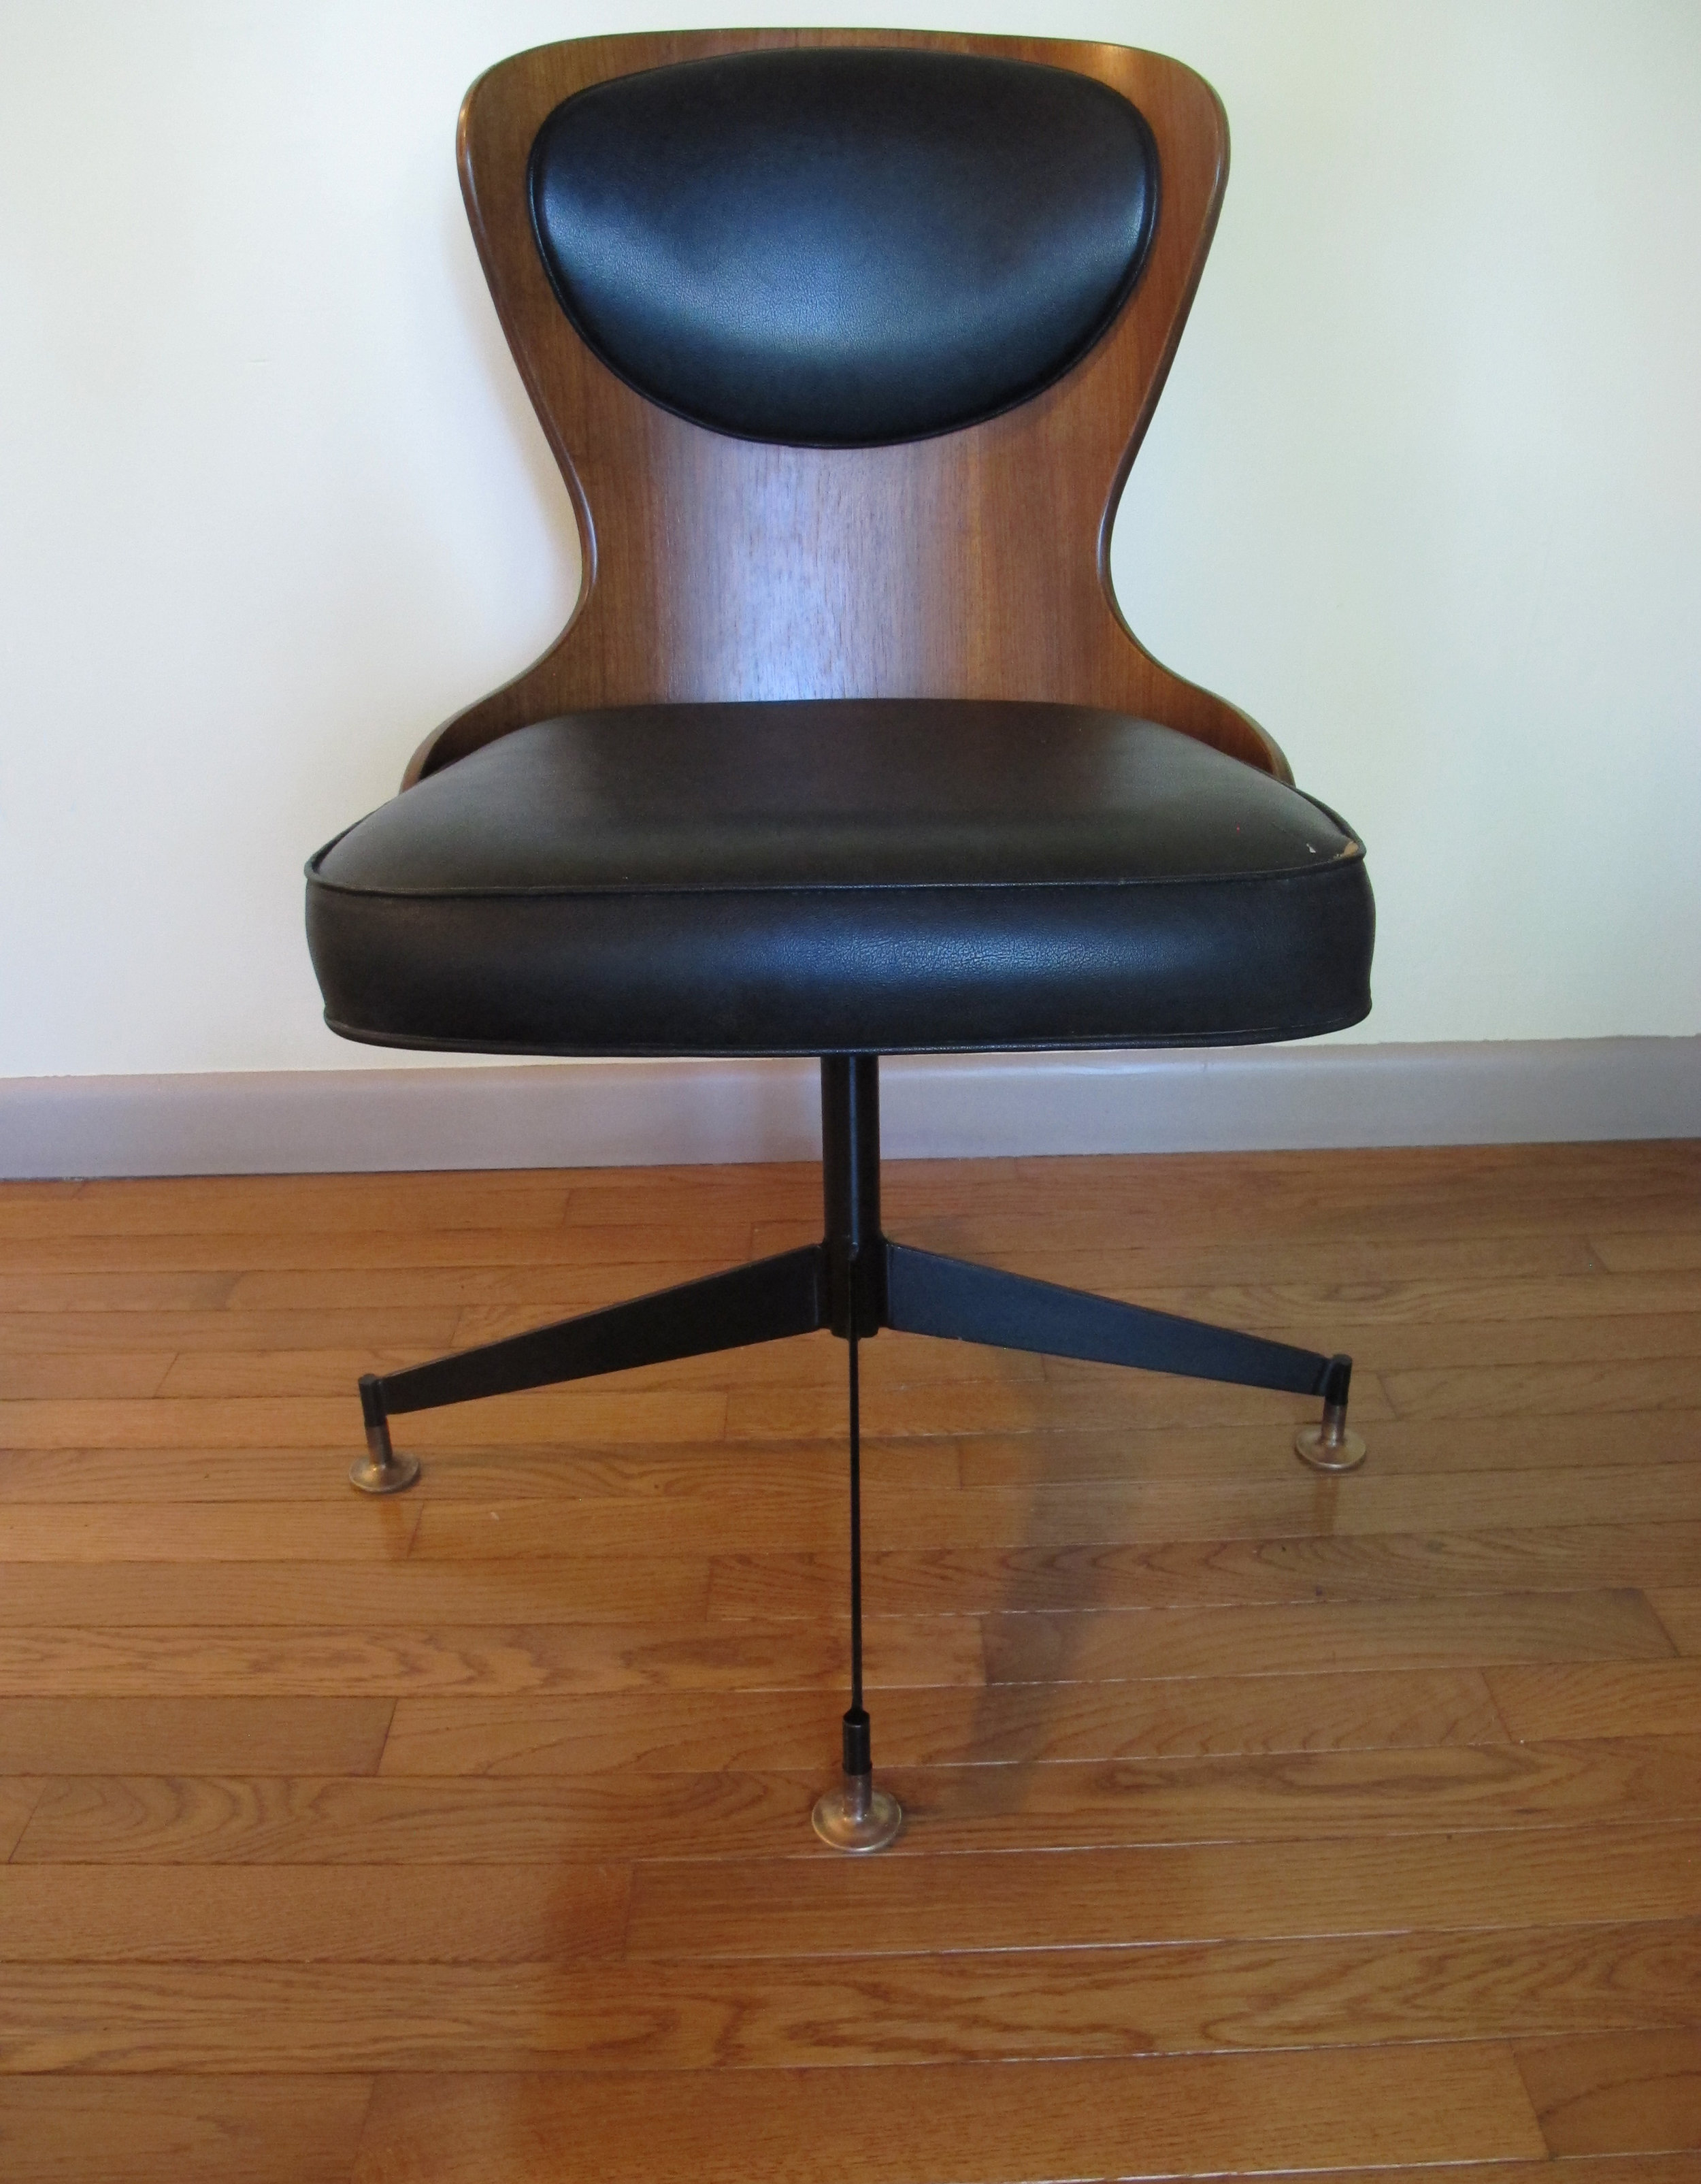 MID CENTURY SWIVEL CHAIR ATTRIBUTED TO GEORGE MULTIUSER FOR PLYCRAFT